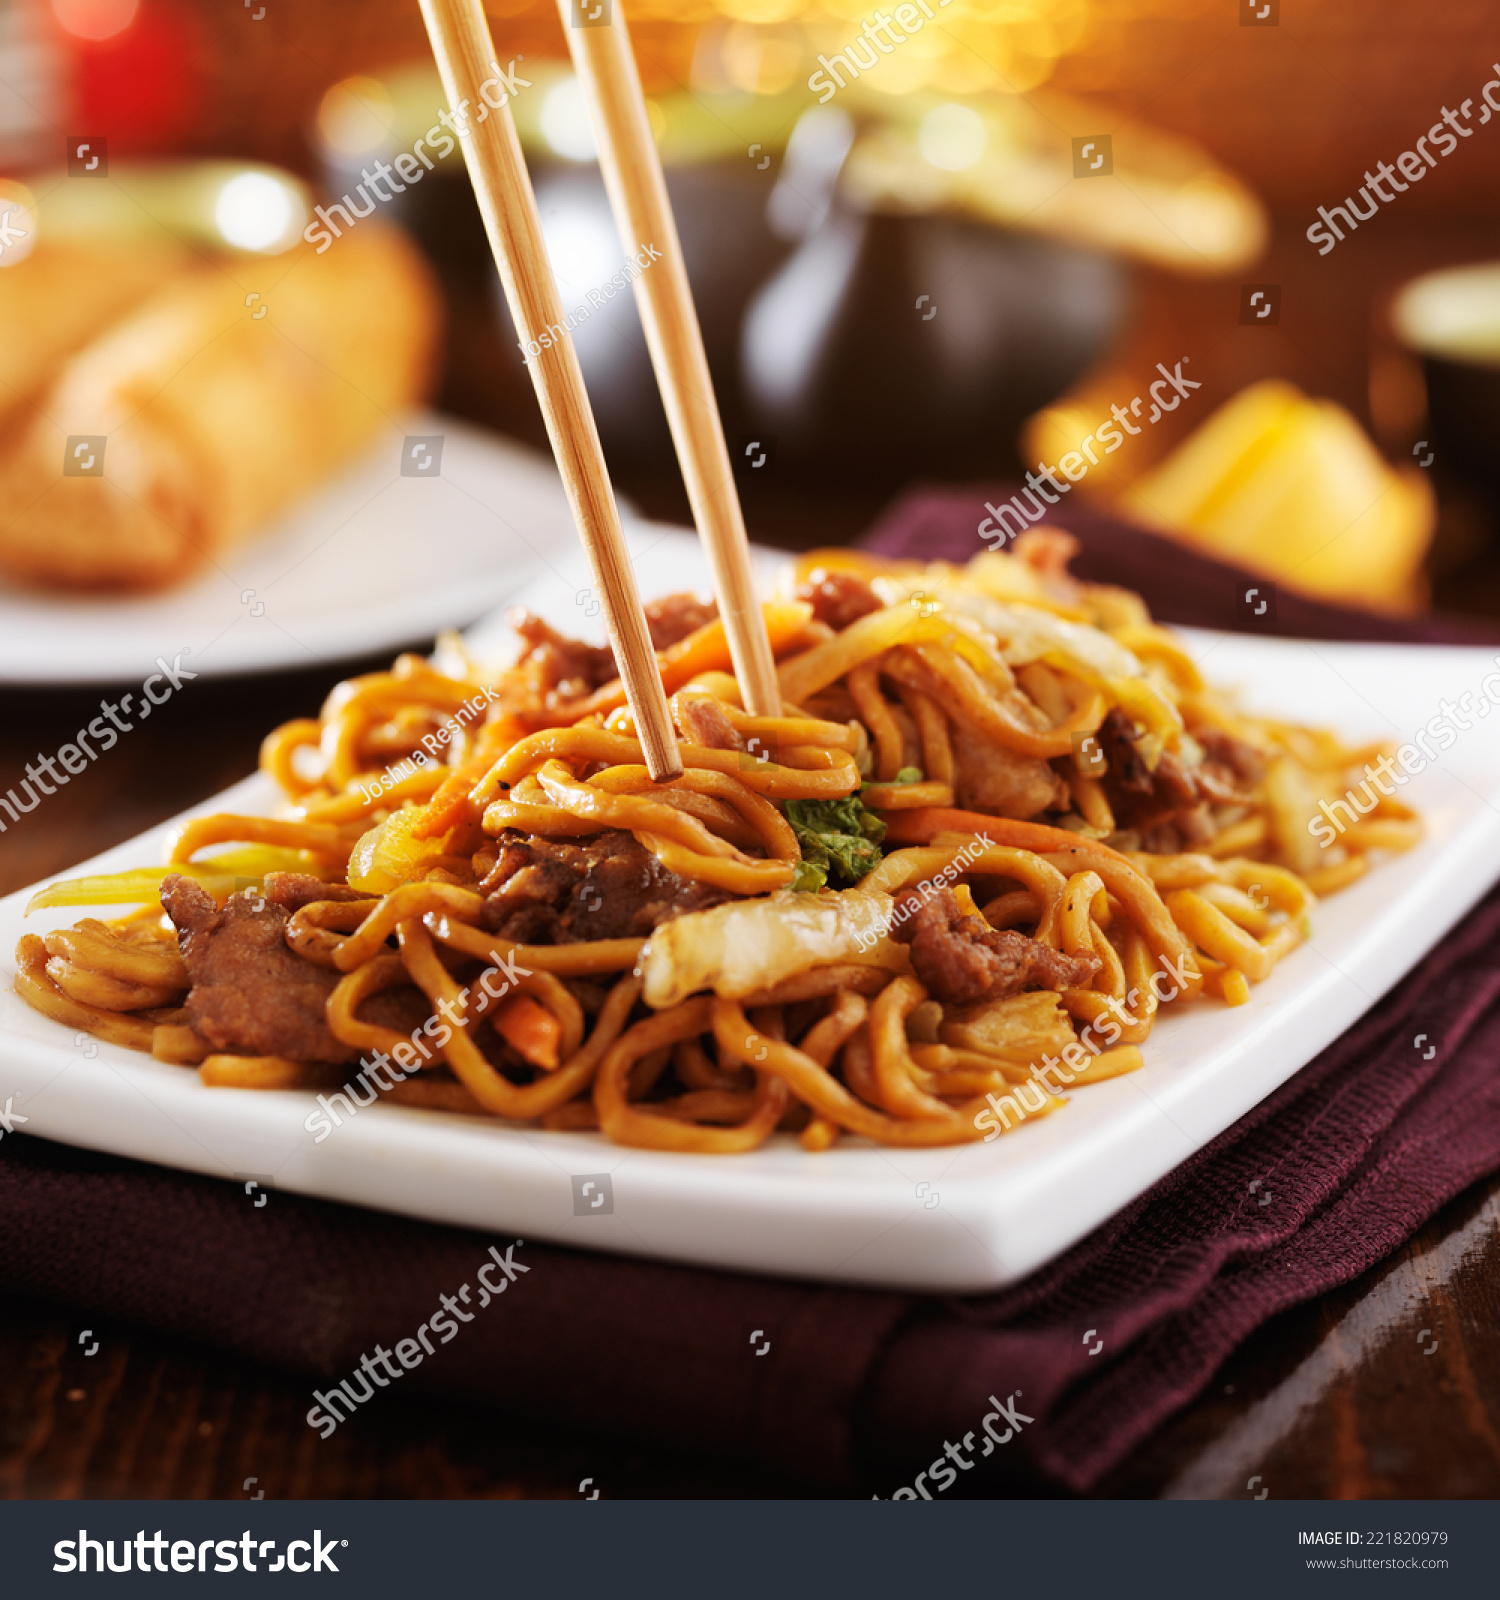 how to cut beef with chop sticks